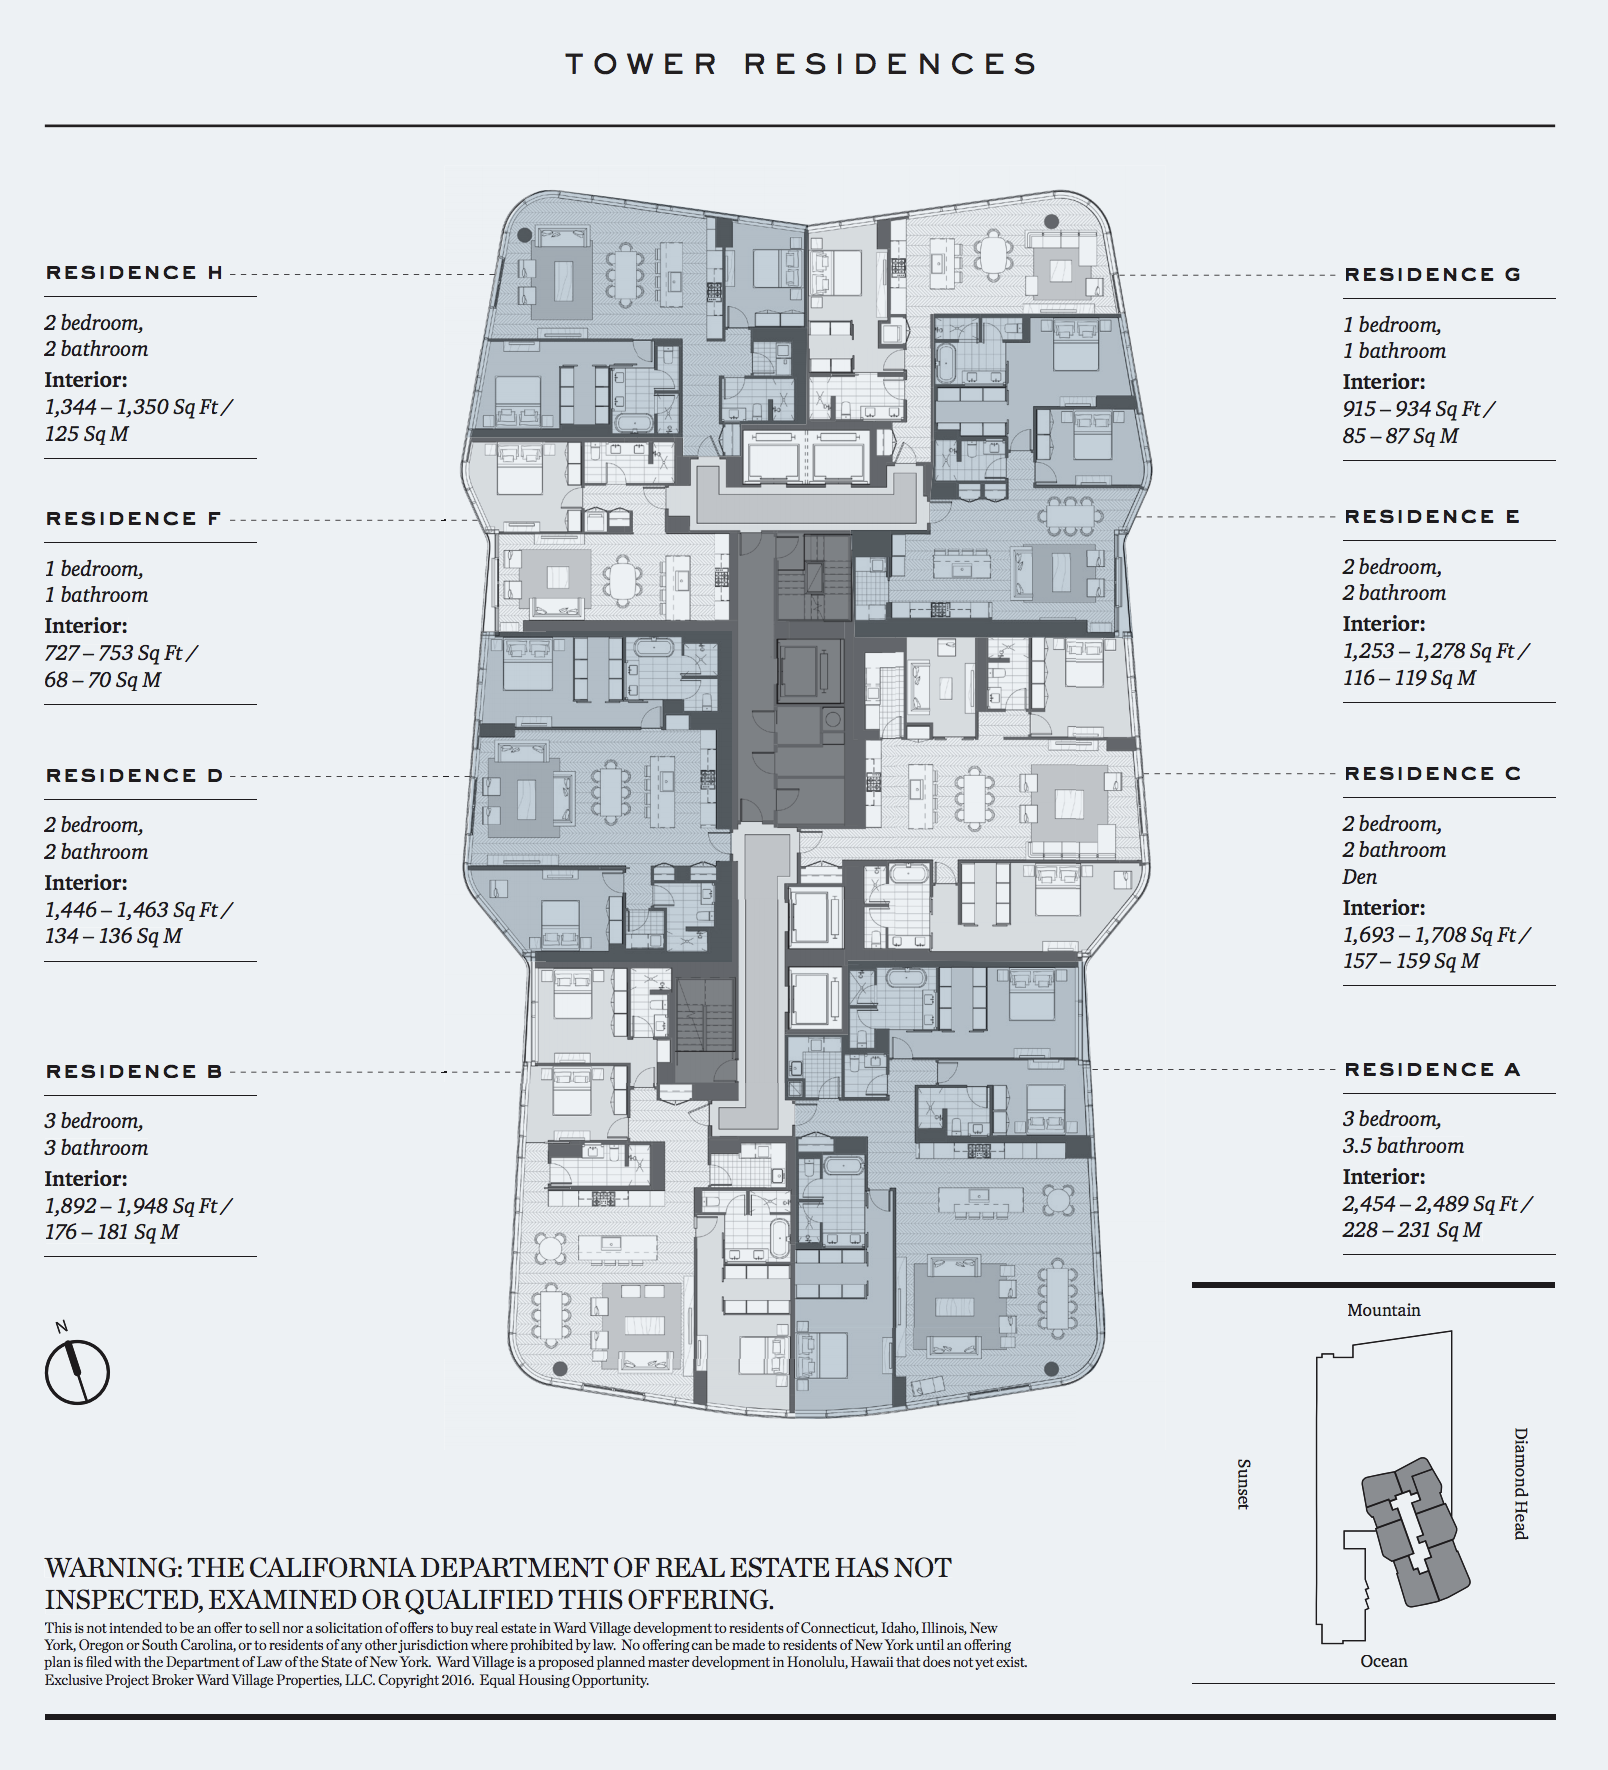 Anaha Luxury Condos For Sale Ward Village With Images Luxury Condo Condos For Sale Apartment Plans